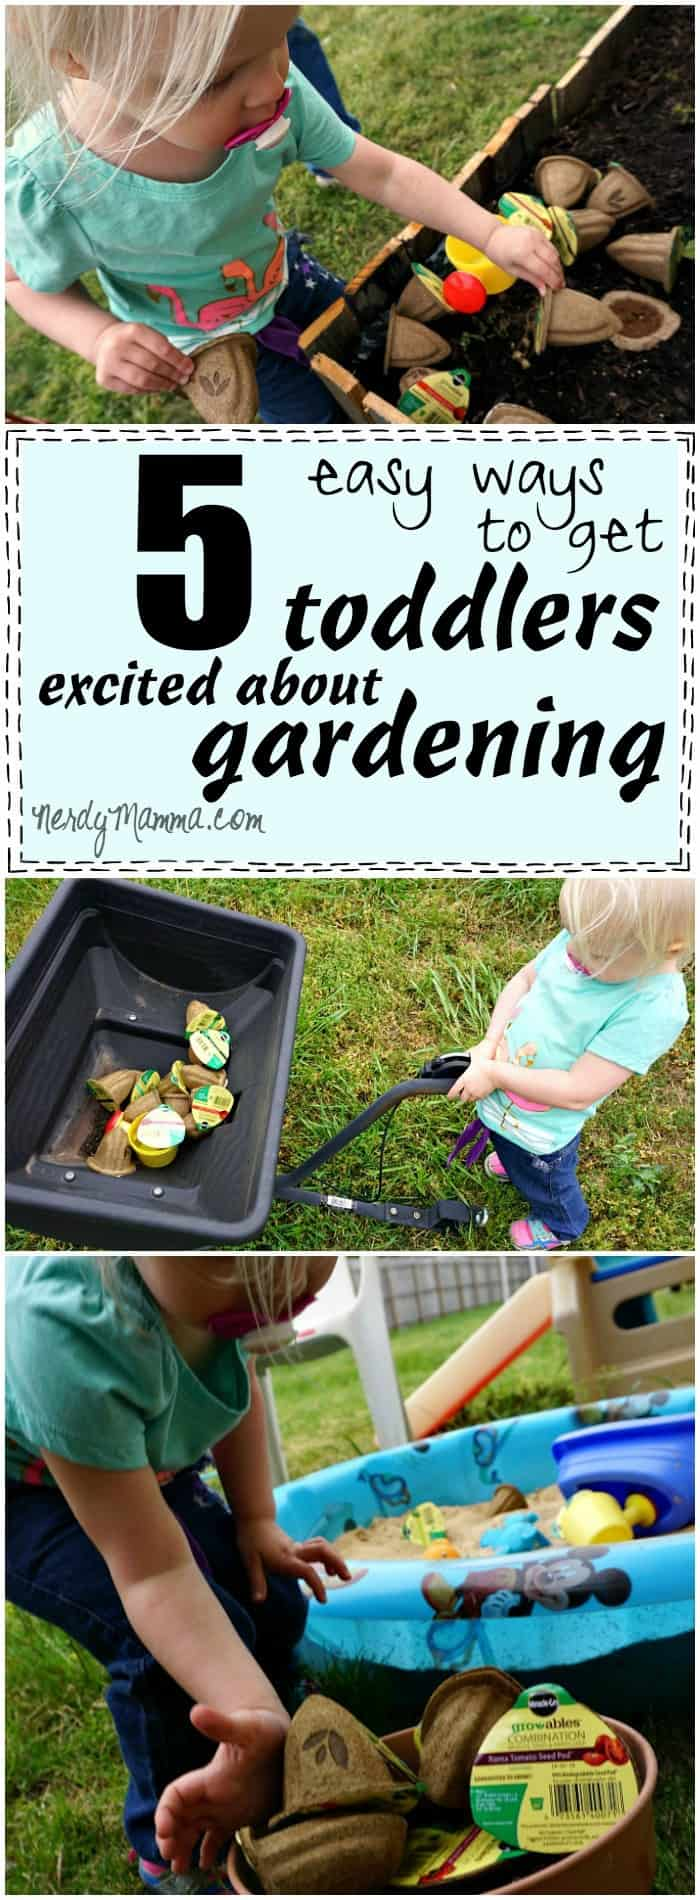 I love these 5 easy ways to get toddlers excited about gardening! This is so easy!